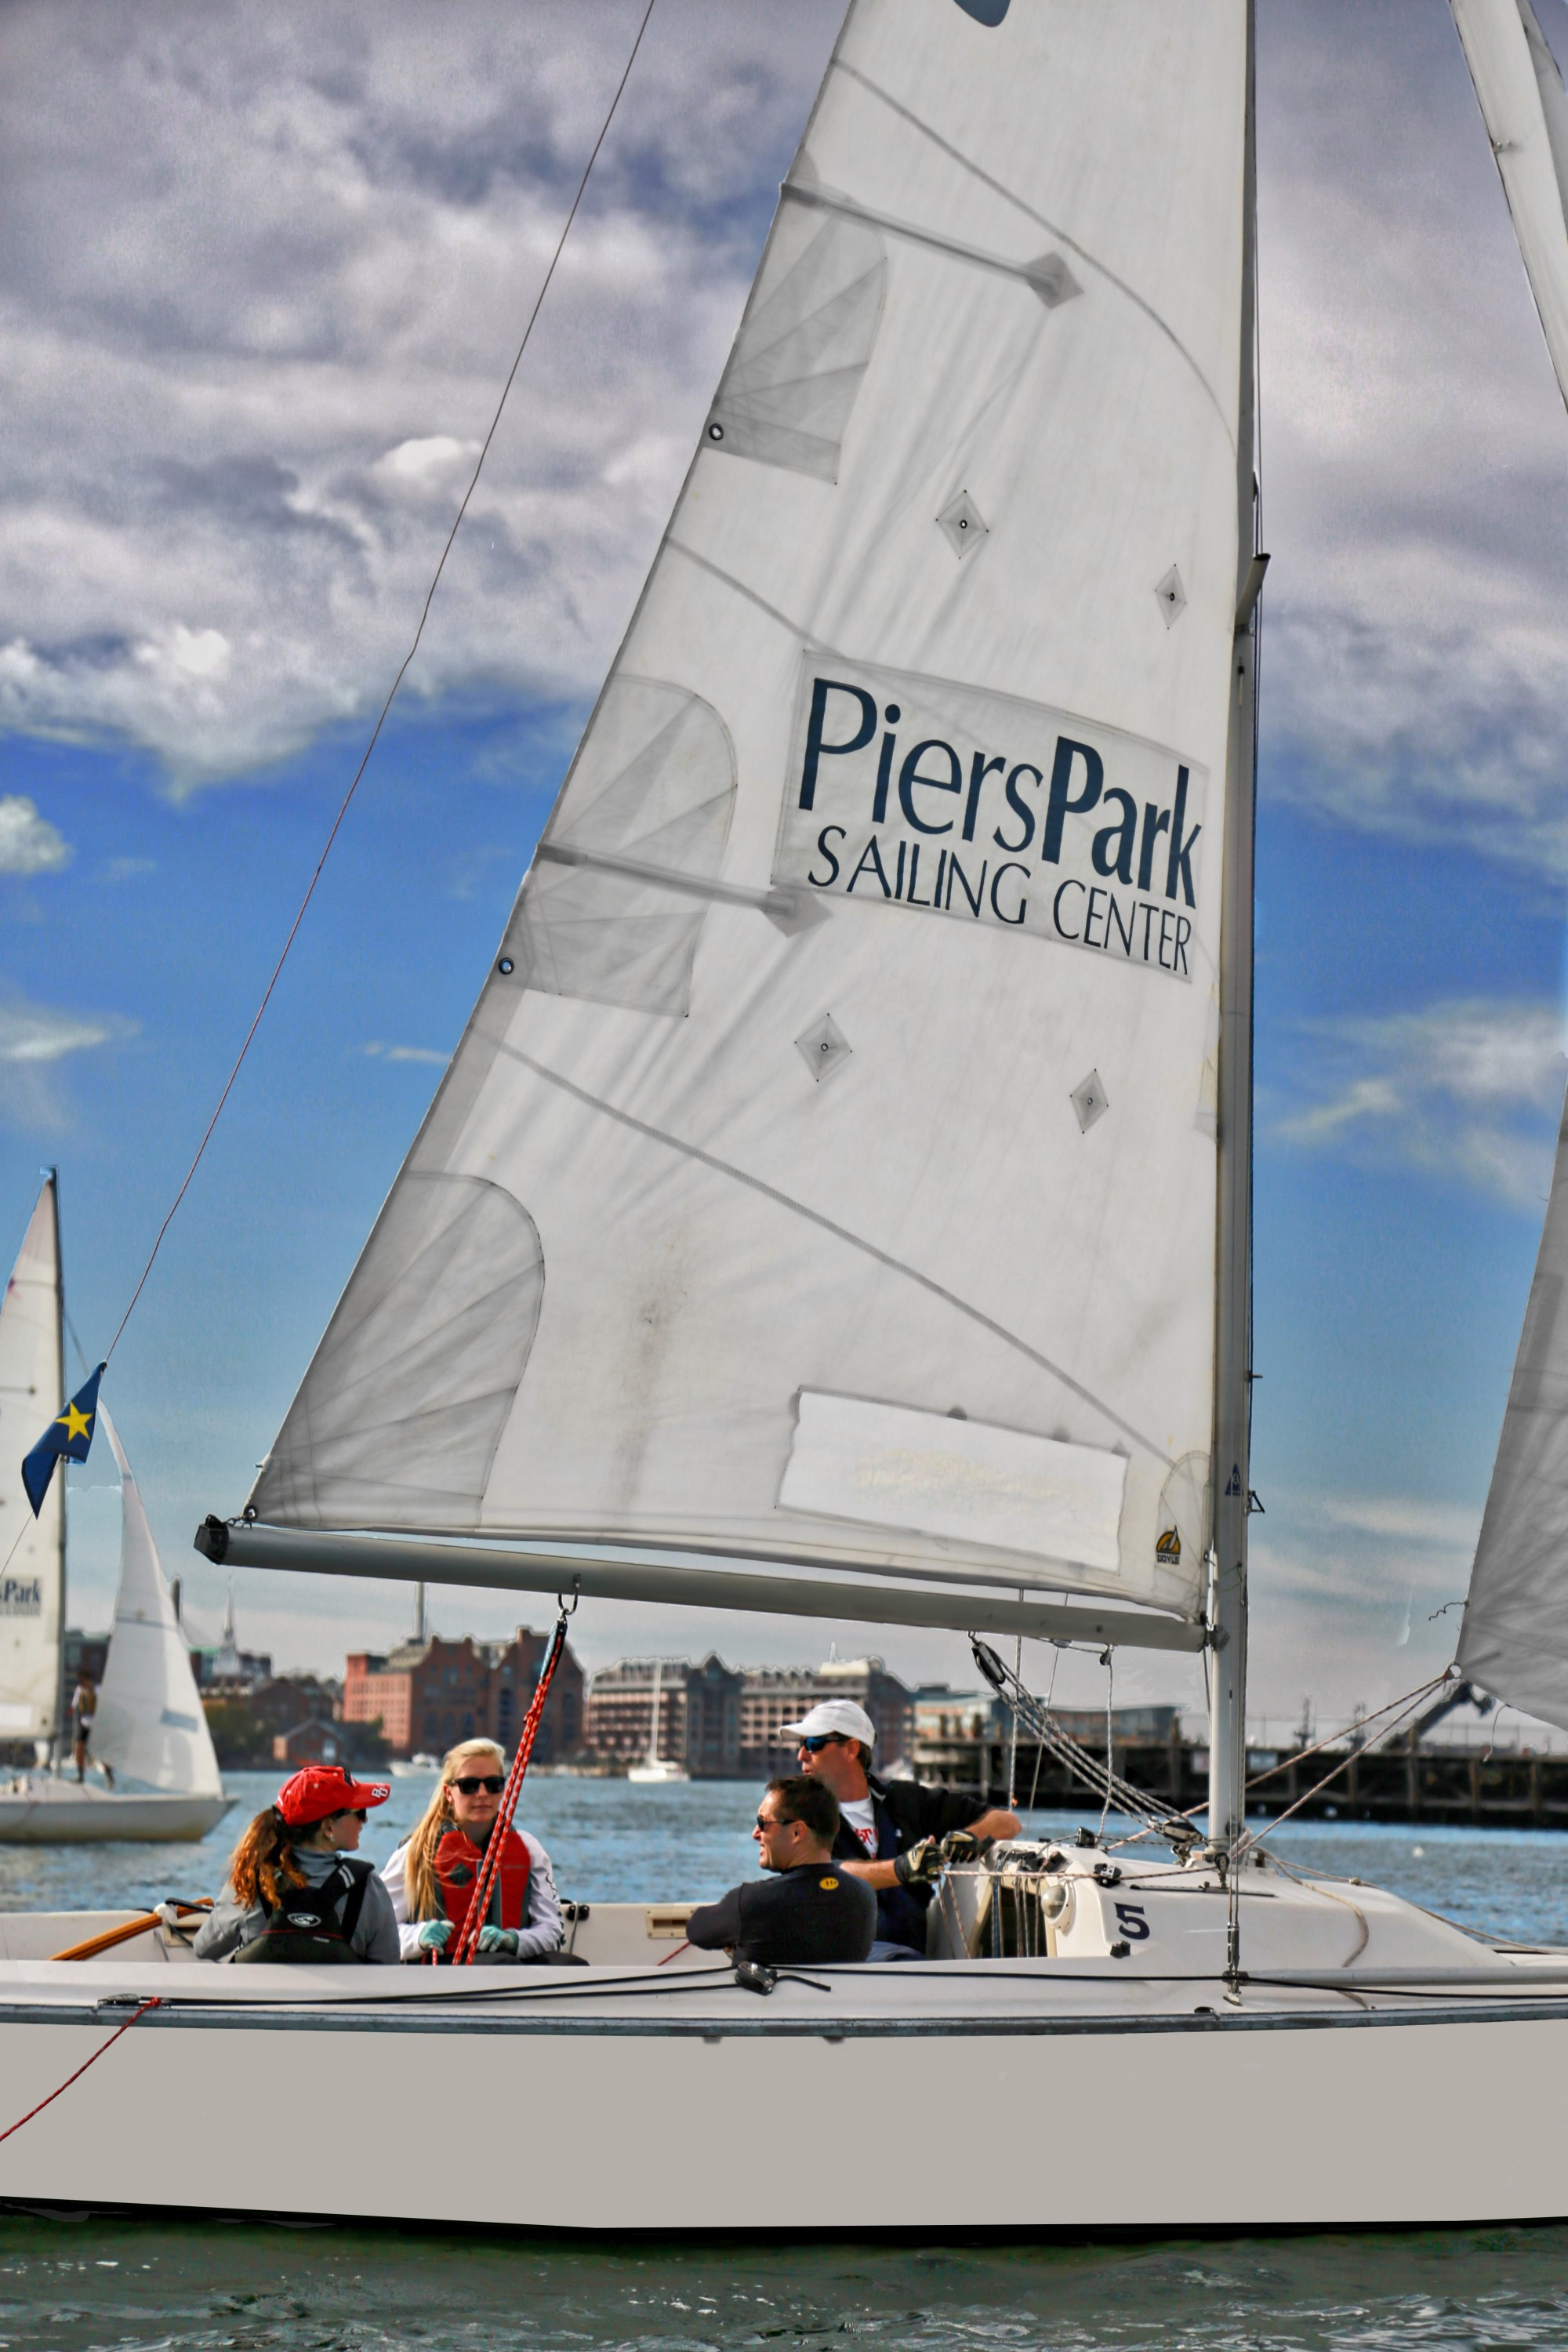 Sailing at Piers Park!